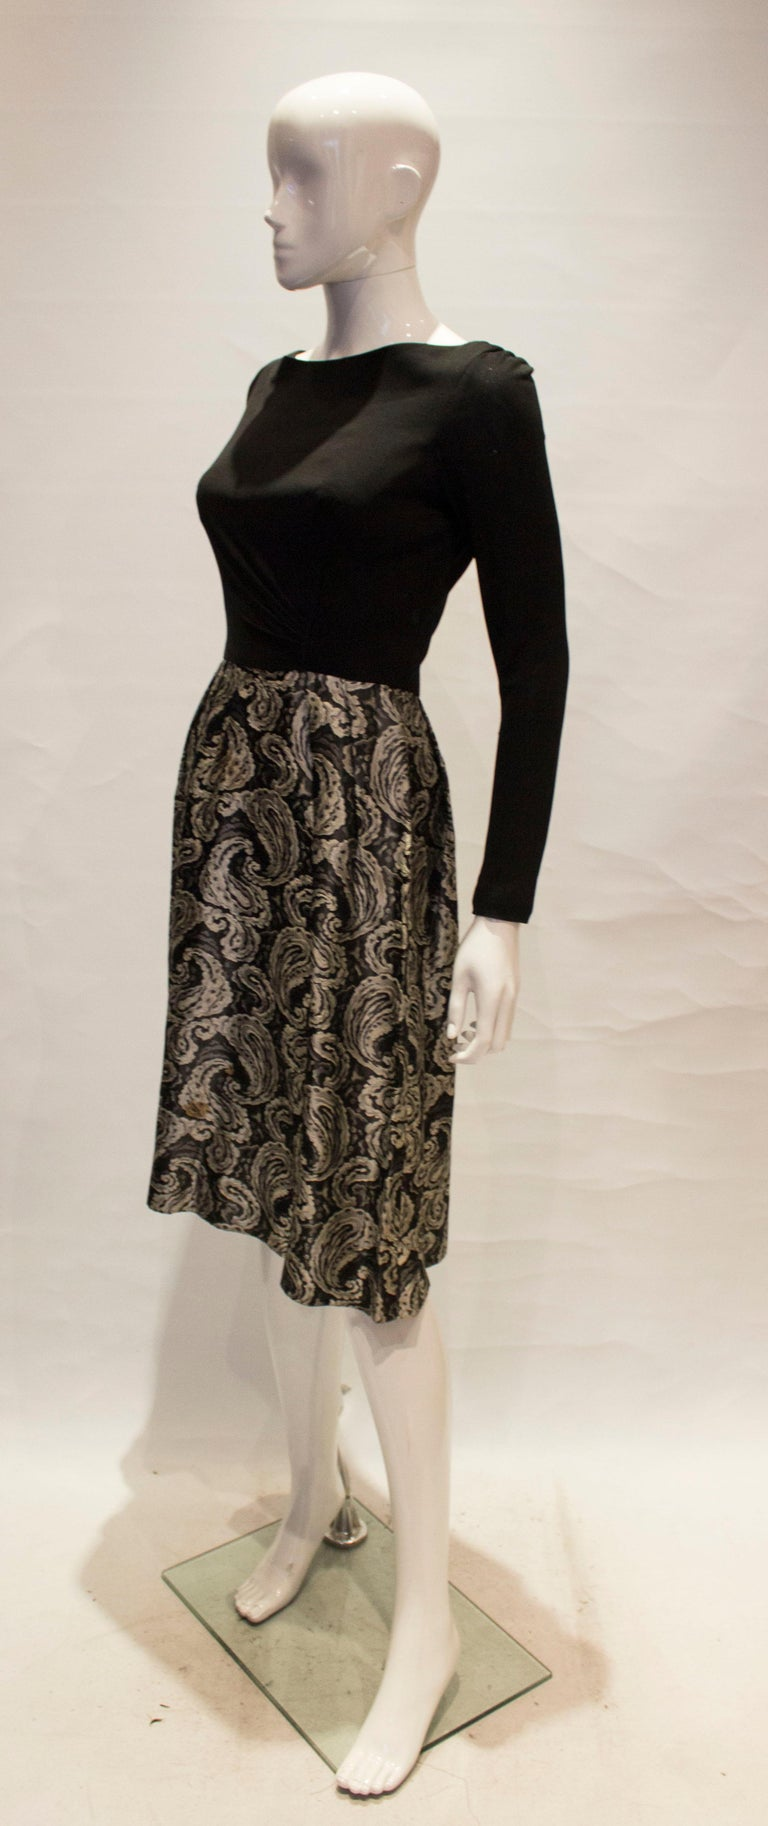 Black A vintage 1950s silver and black brocade party low back paisley dress small